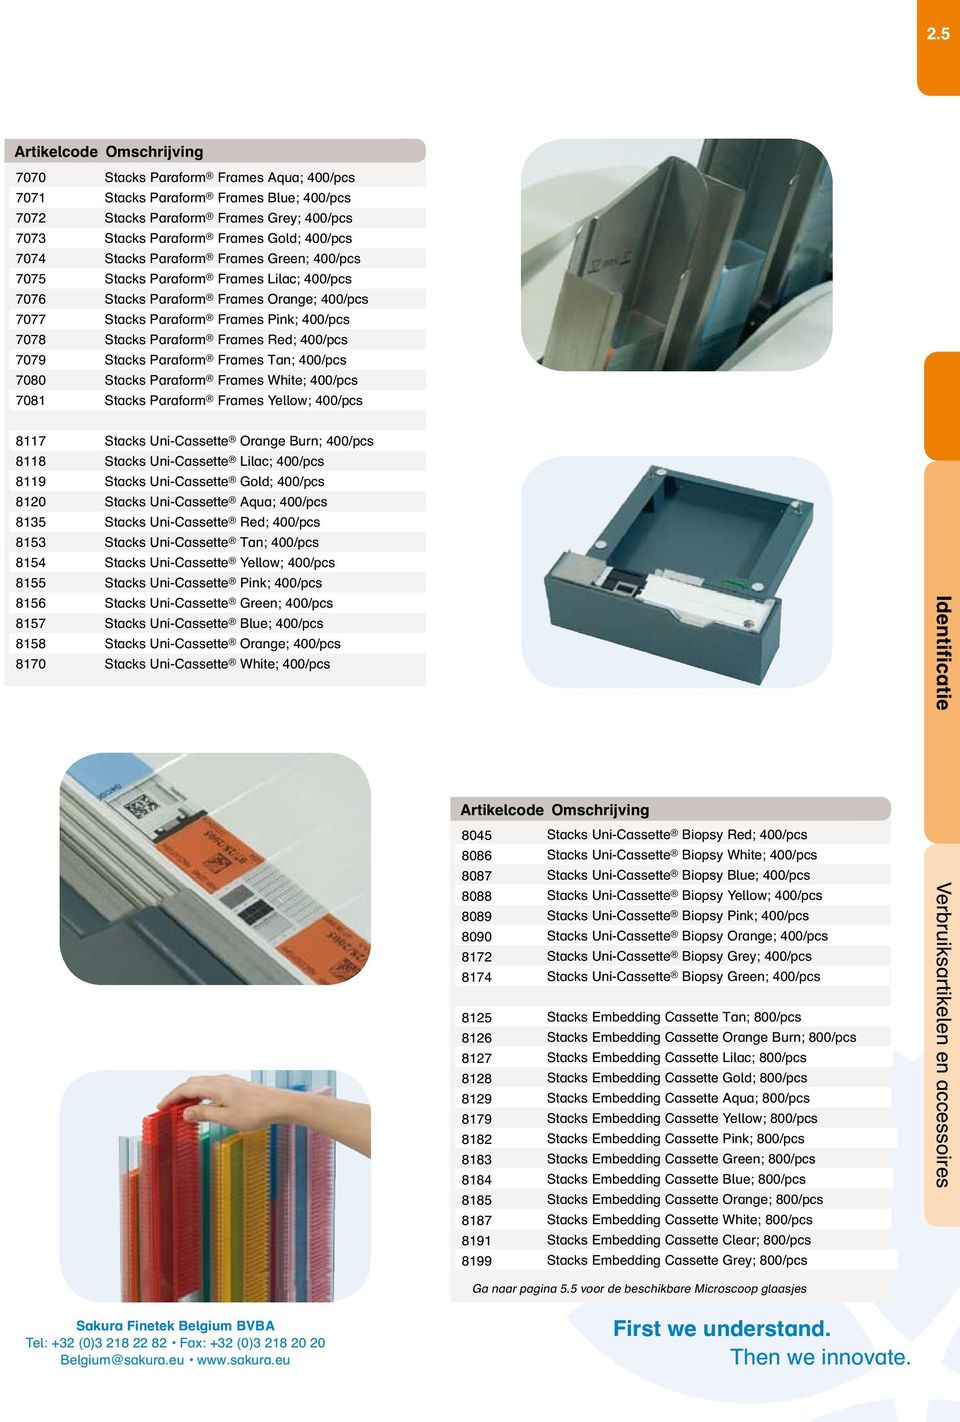 400/pcs Stacks Paraform Frames Tan; 400/pcs Stacks Paraform Frames White; 400/pcs Stacks Paraform Frames Yellow; 400/pcs 8117 8118 8119 8120 8135 8153 8154 8155 8156 8157 8158 8170 Stacks